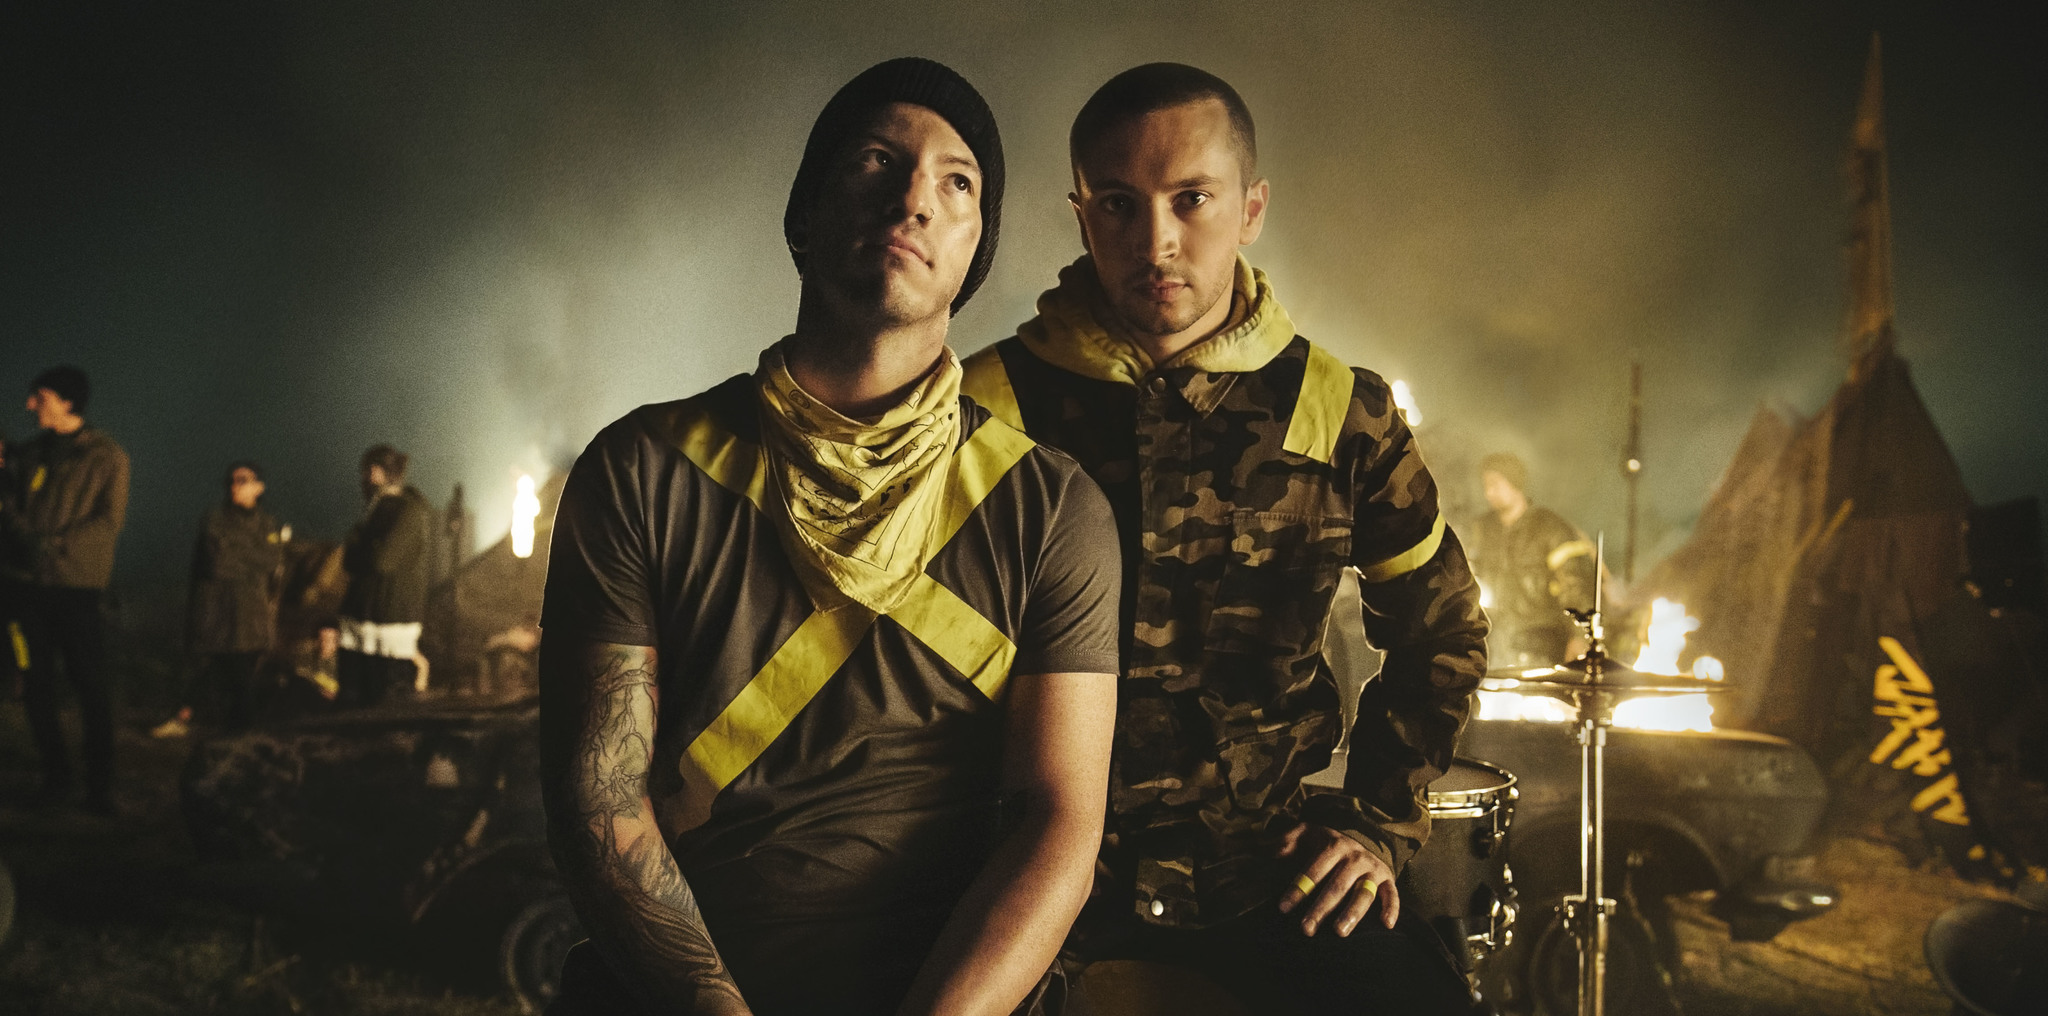 Twenty One Pilots Jumpsuit & Nico And The Niners